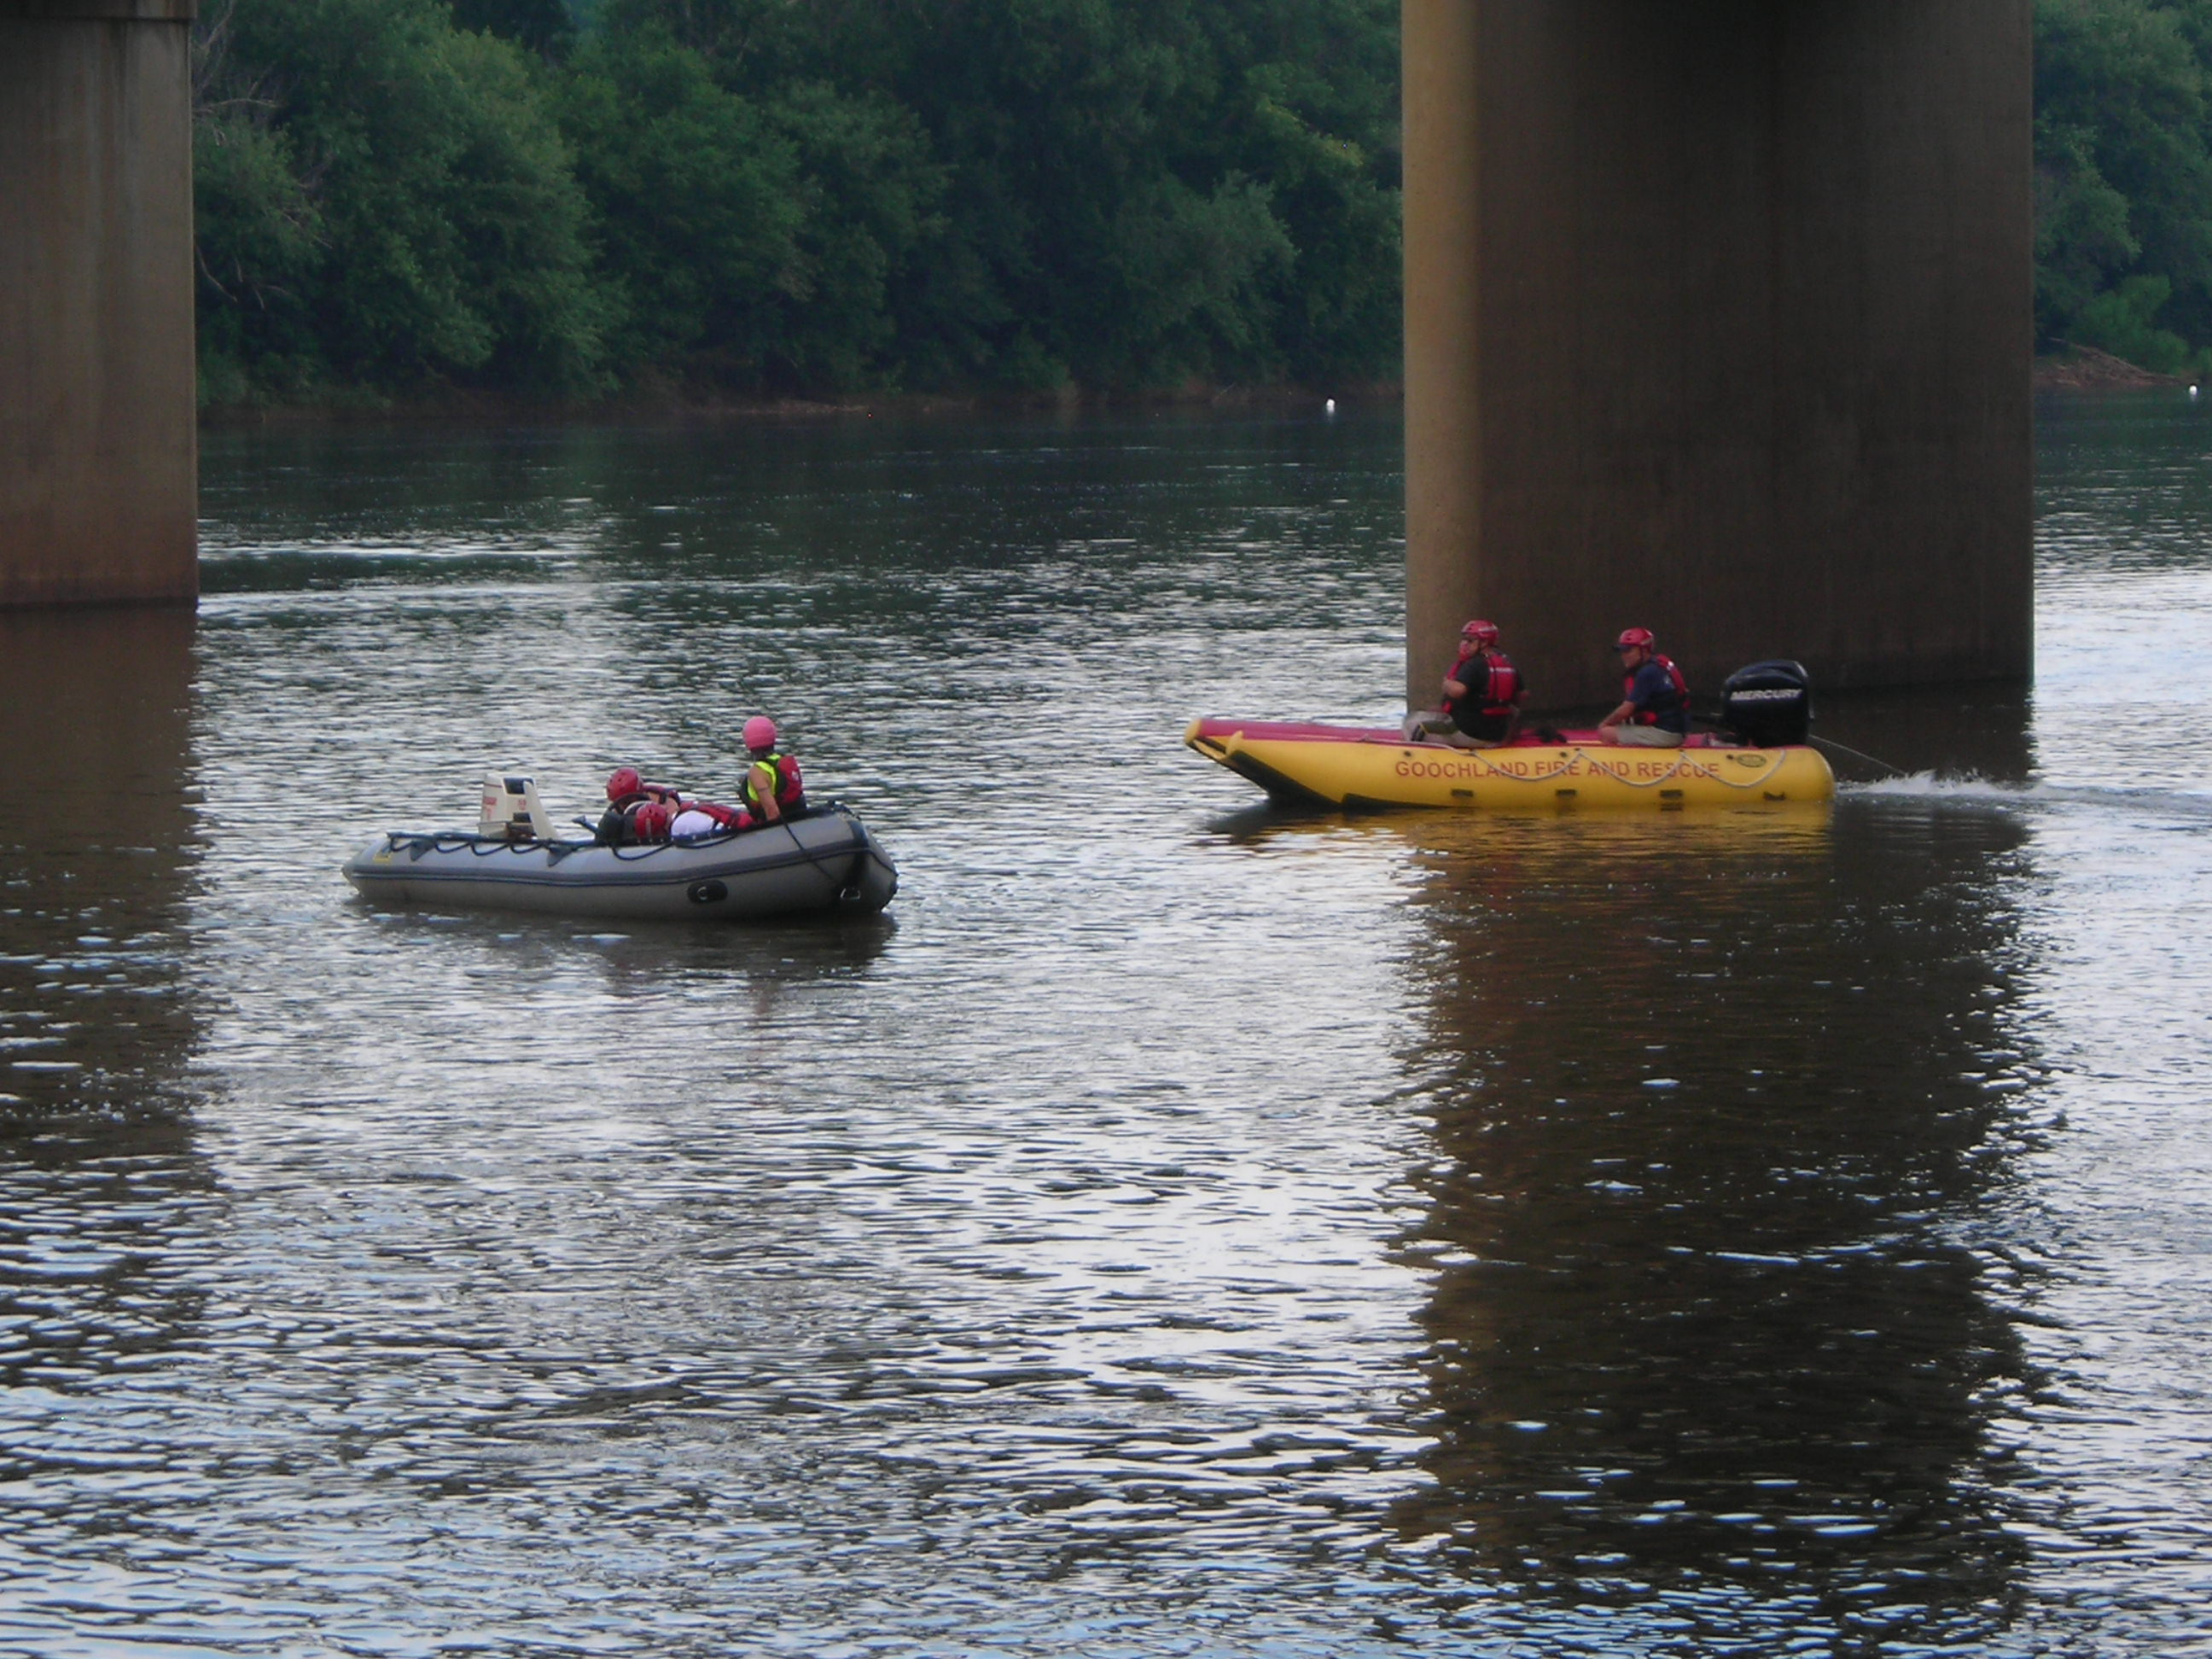 Fire-Rescue boats